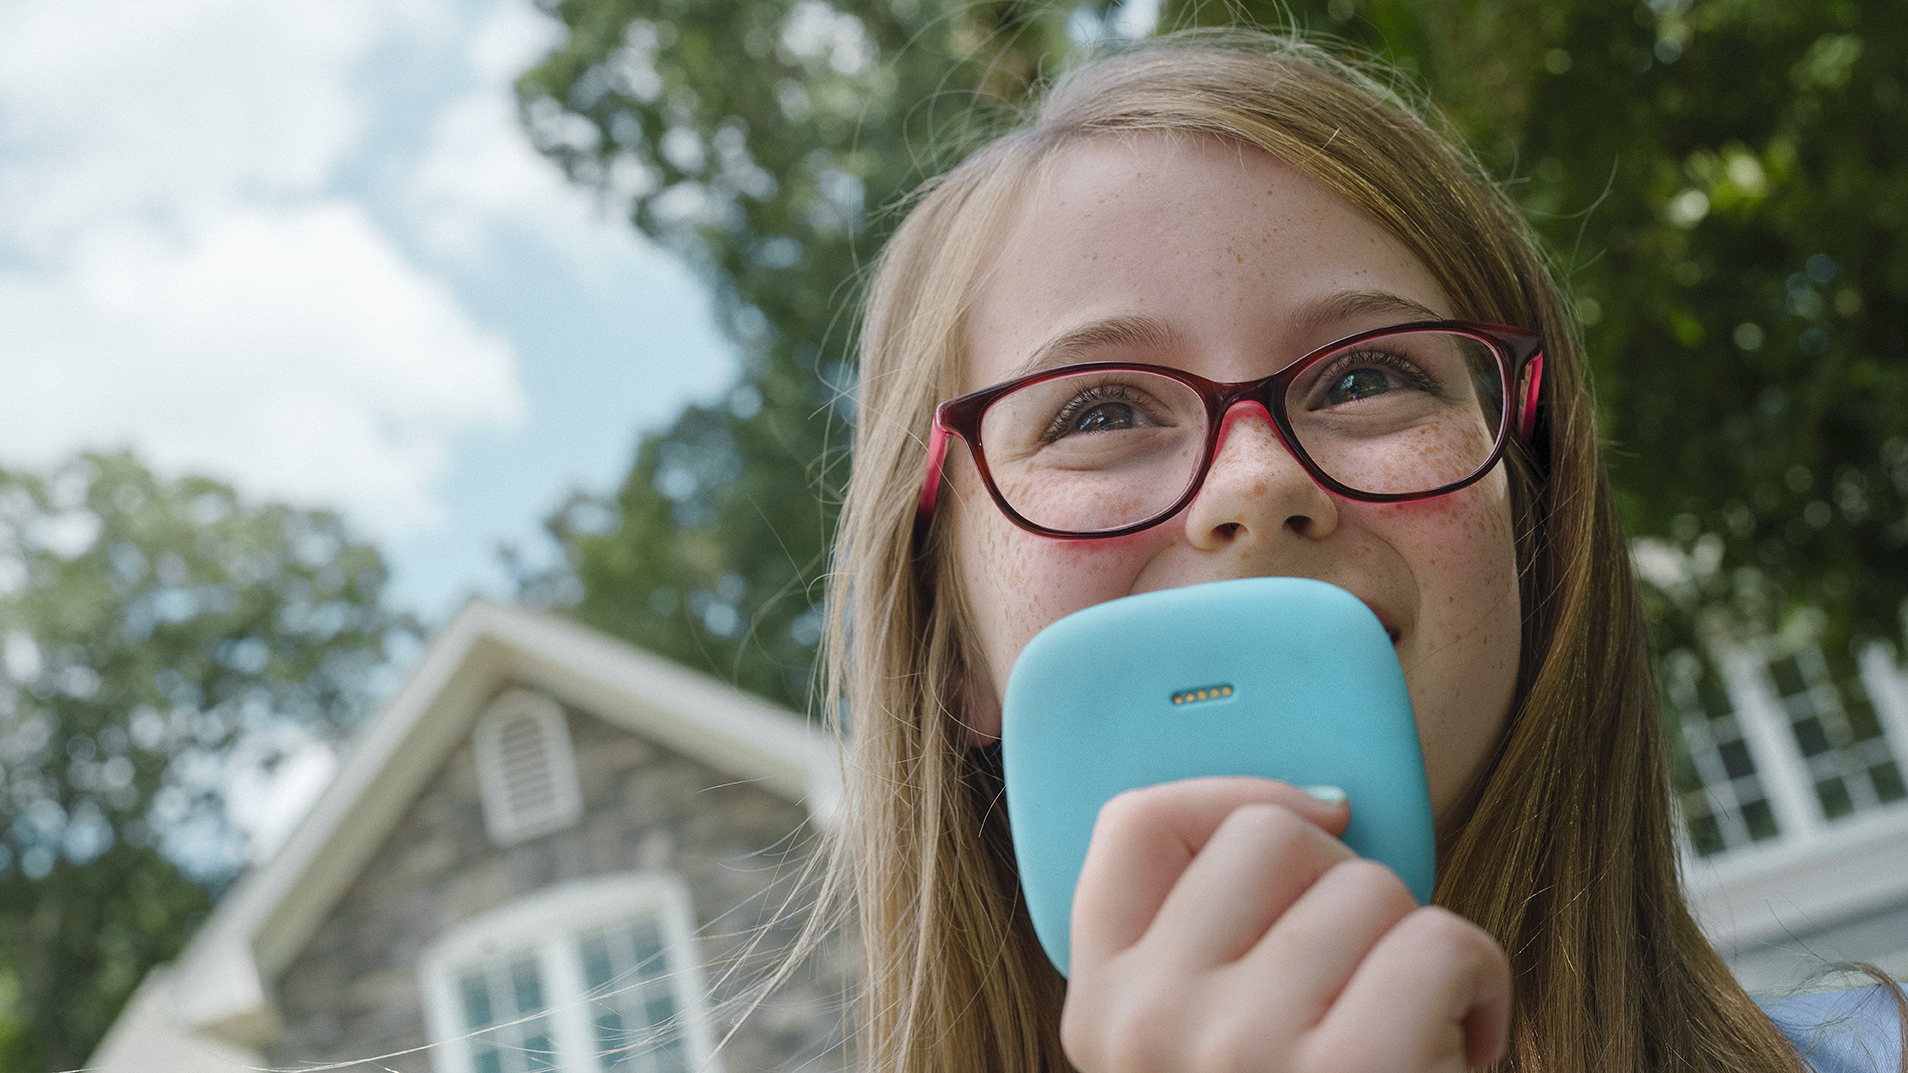 Relay is a smartphone alternative for kids | Sponsored